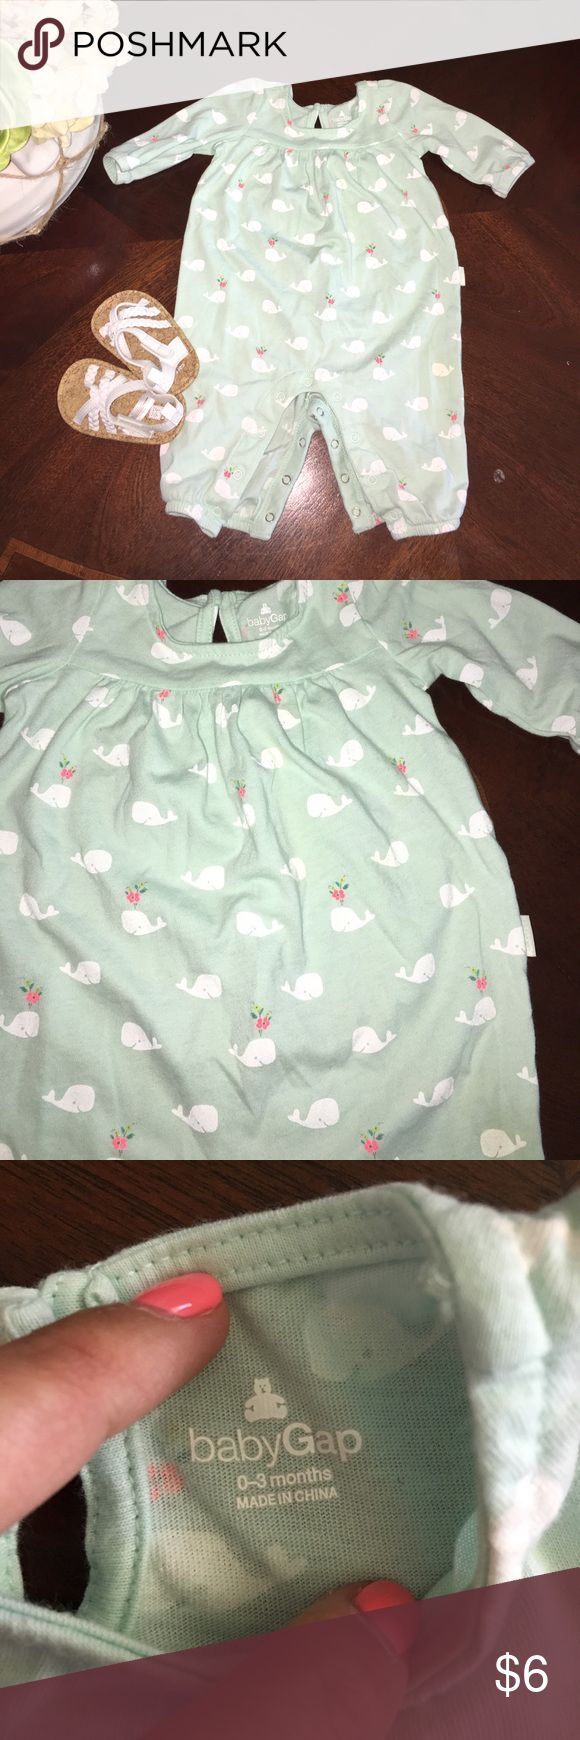 Like new! 💚Baby Gap outfit Super light weight and perfect for Spring this mint green whale print outfit is a steal for the price! Shoes not included but sold in separate listing. Smoke/pet free home. Only washed with Dreft. No rips stains or holes! GAP One Pieces